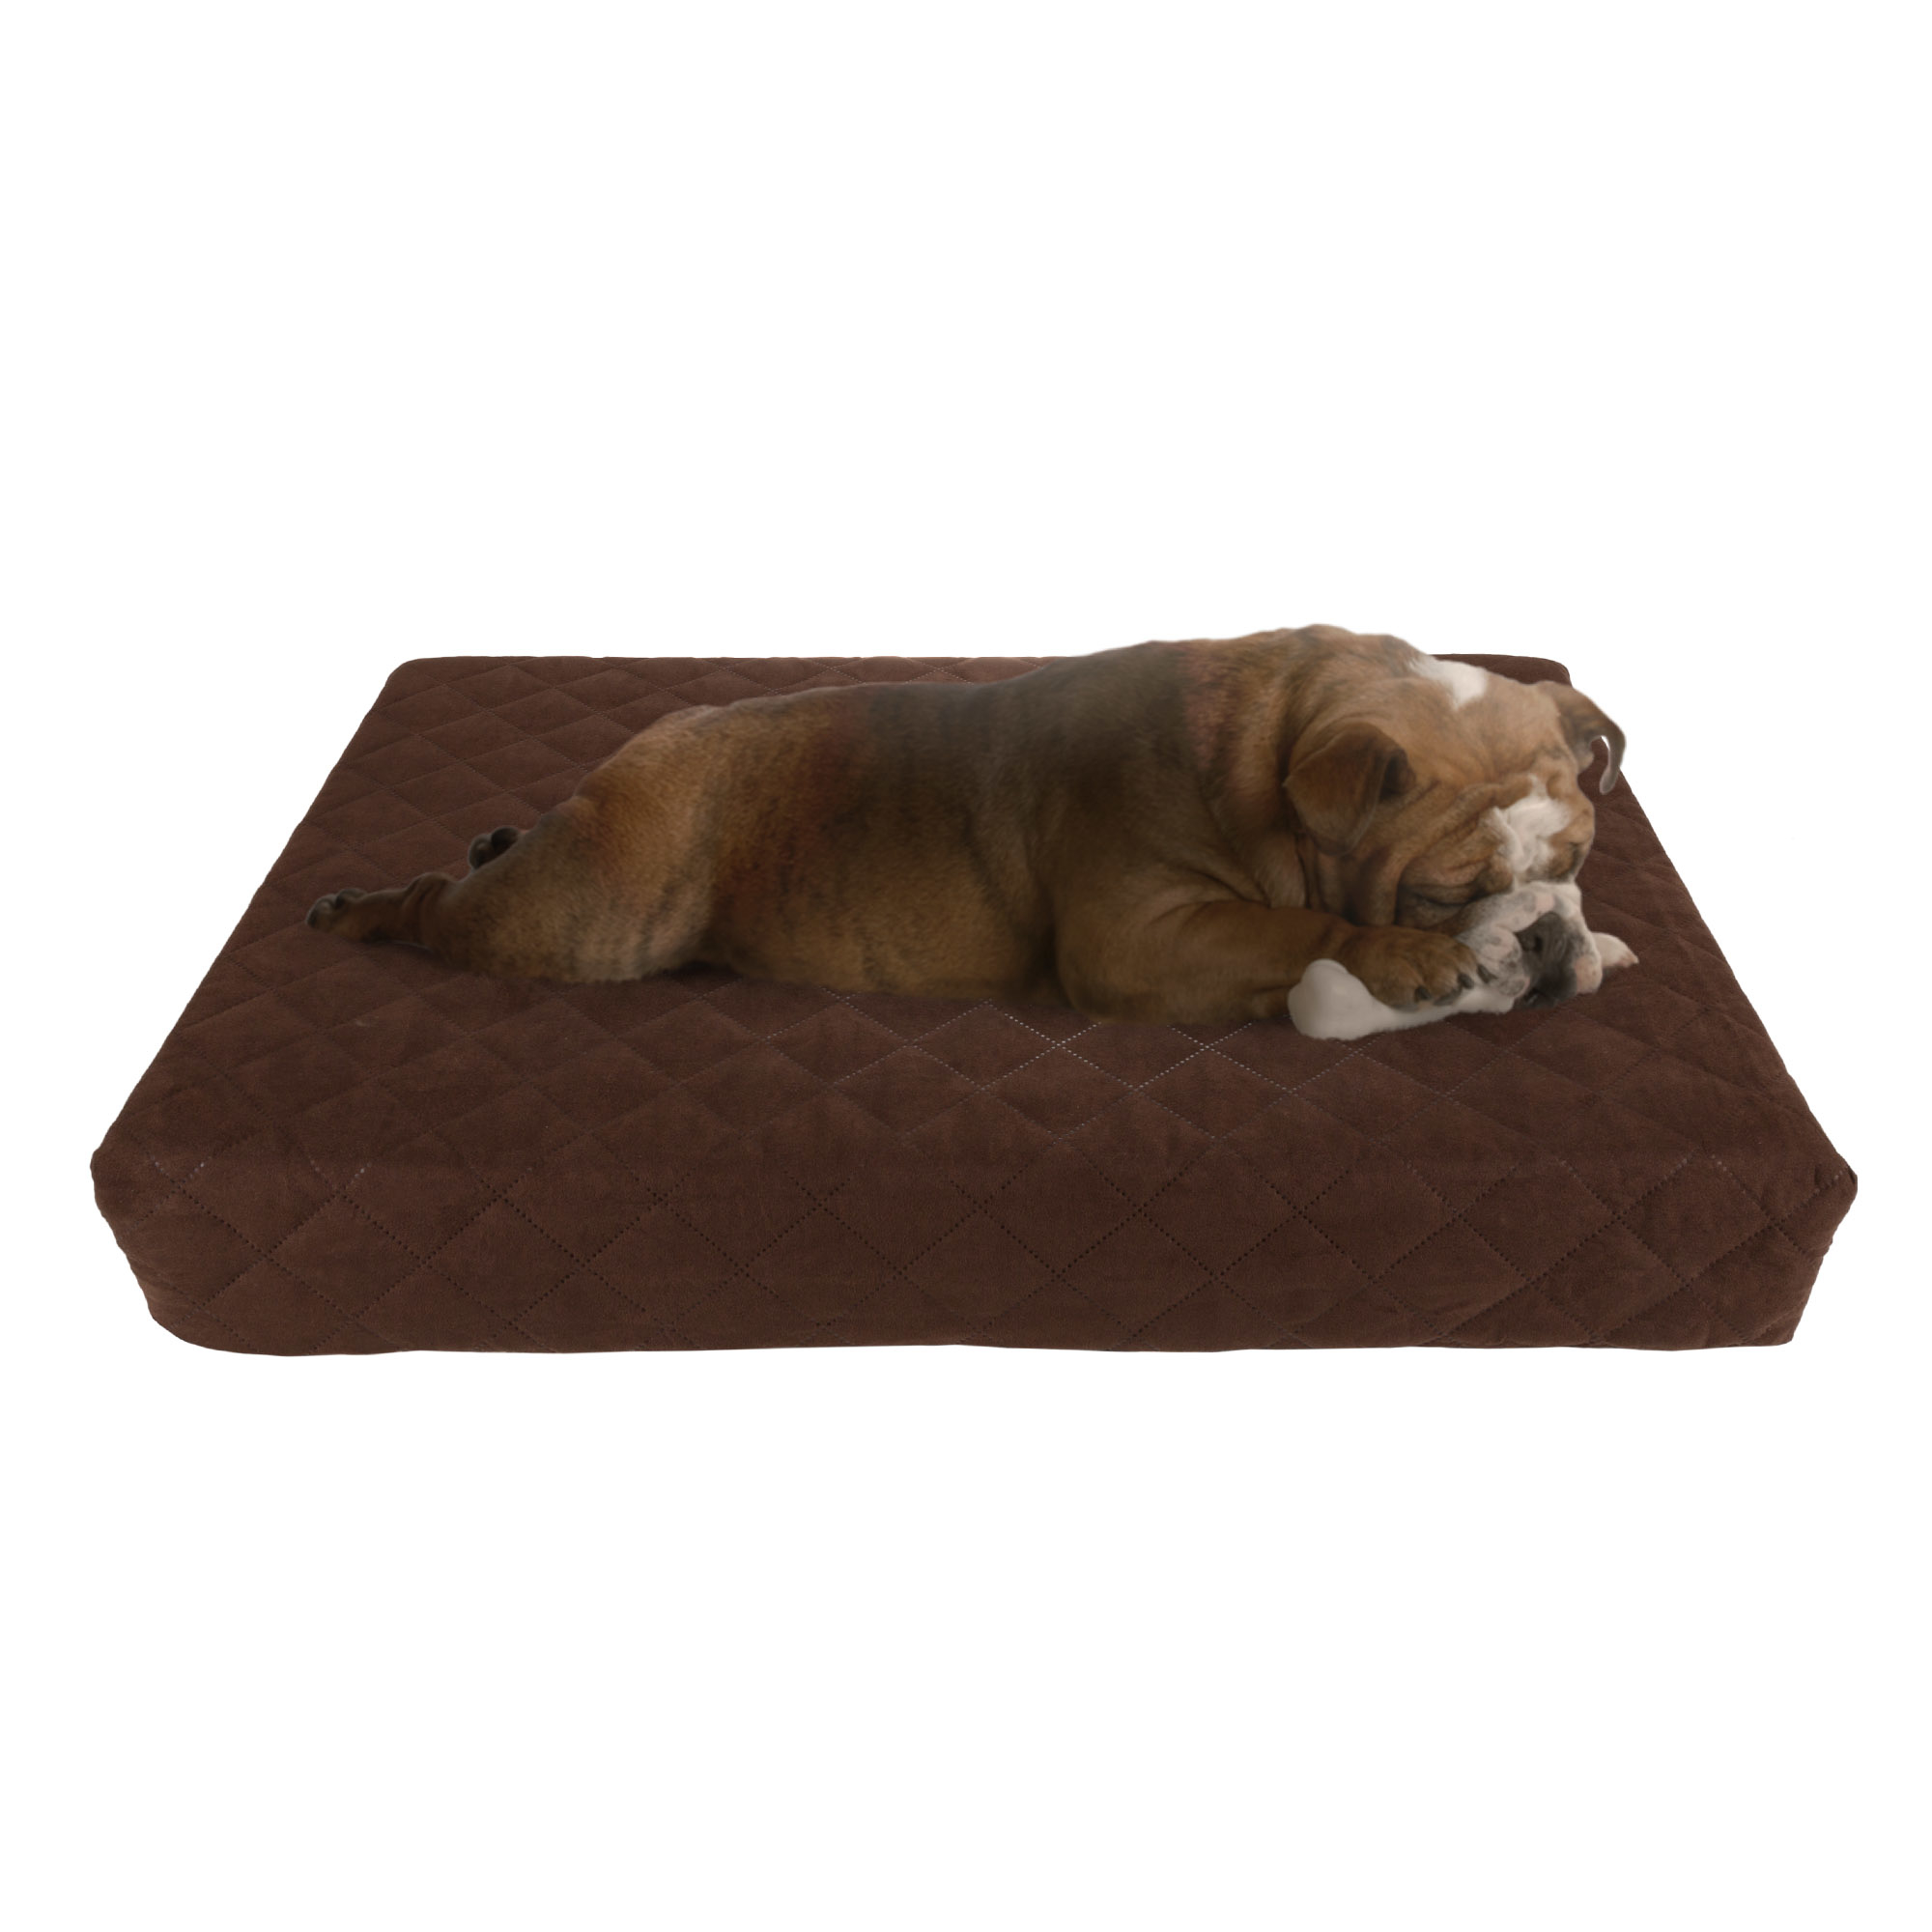 Waterproof Memory Foam Pet Bed Indoor Outdoor Dog